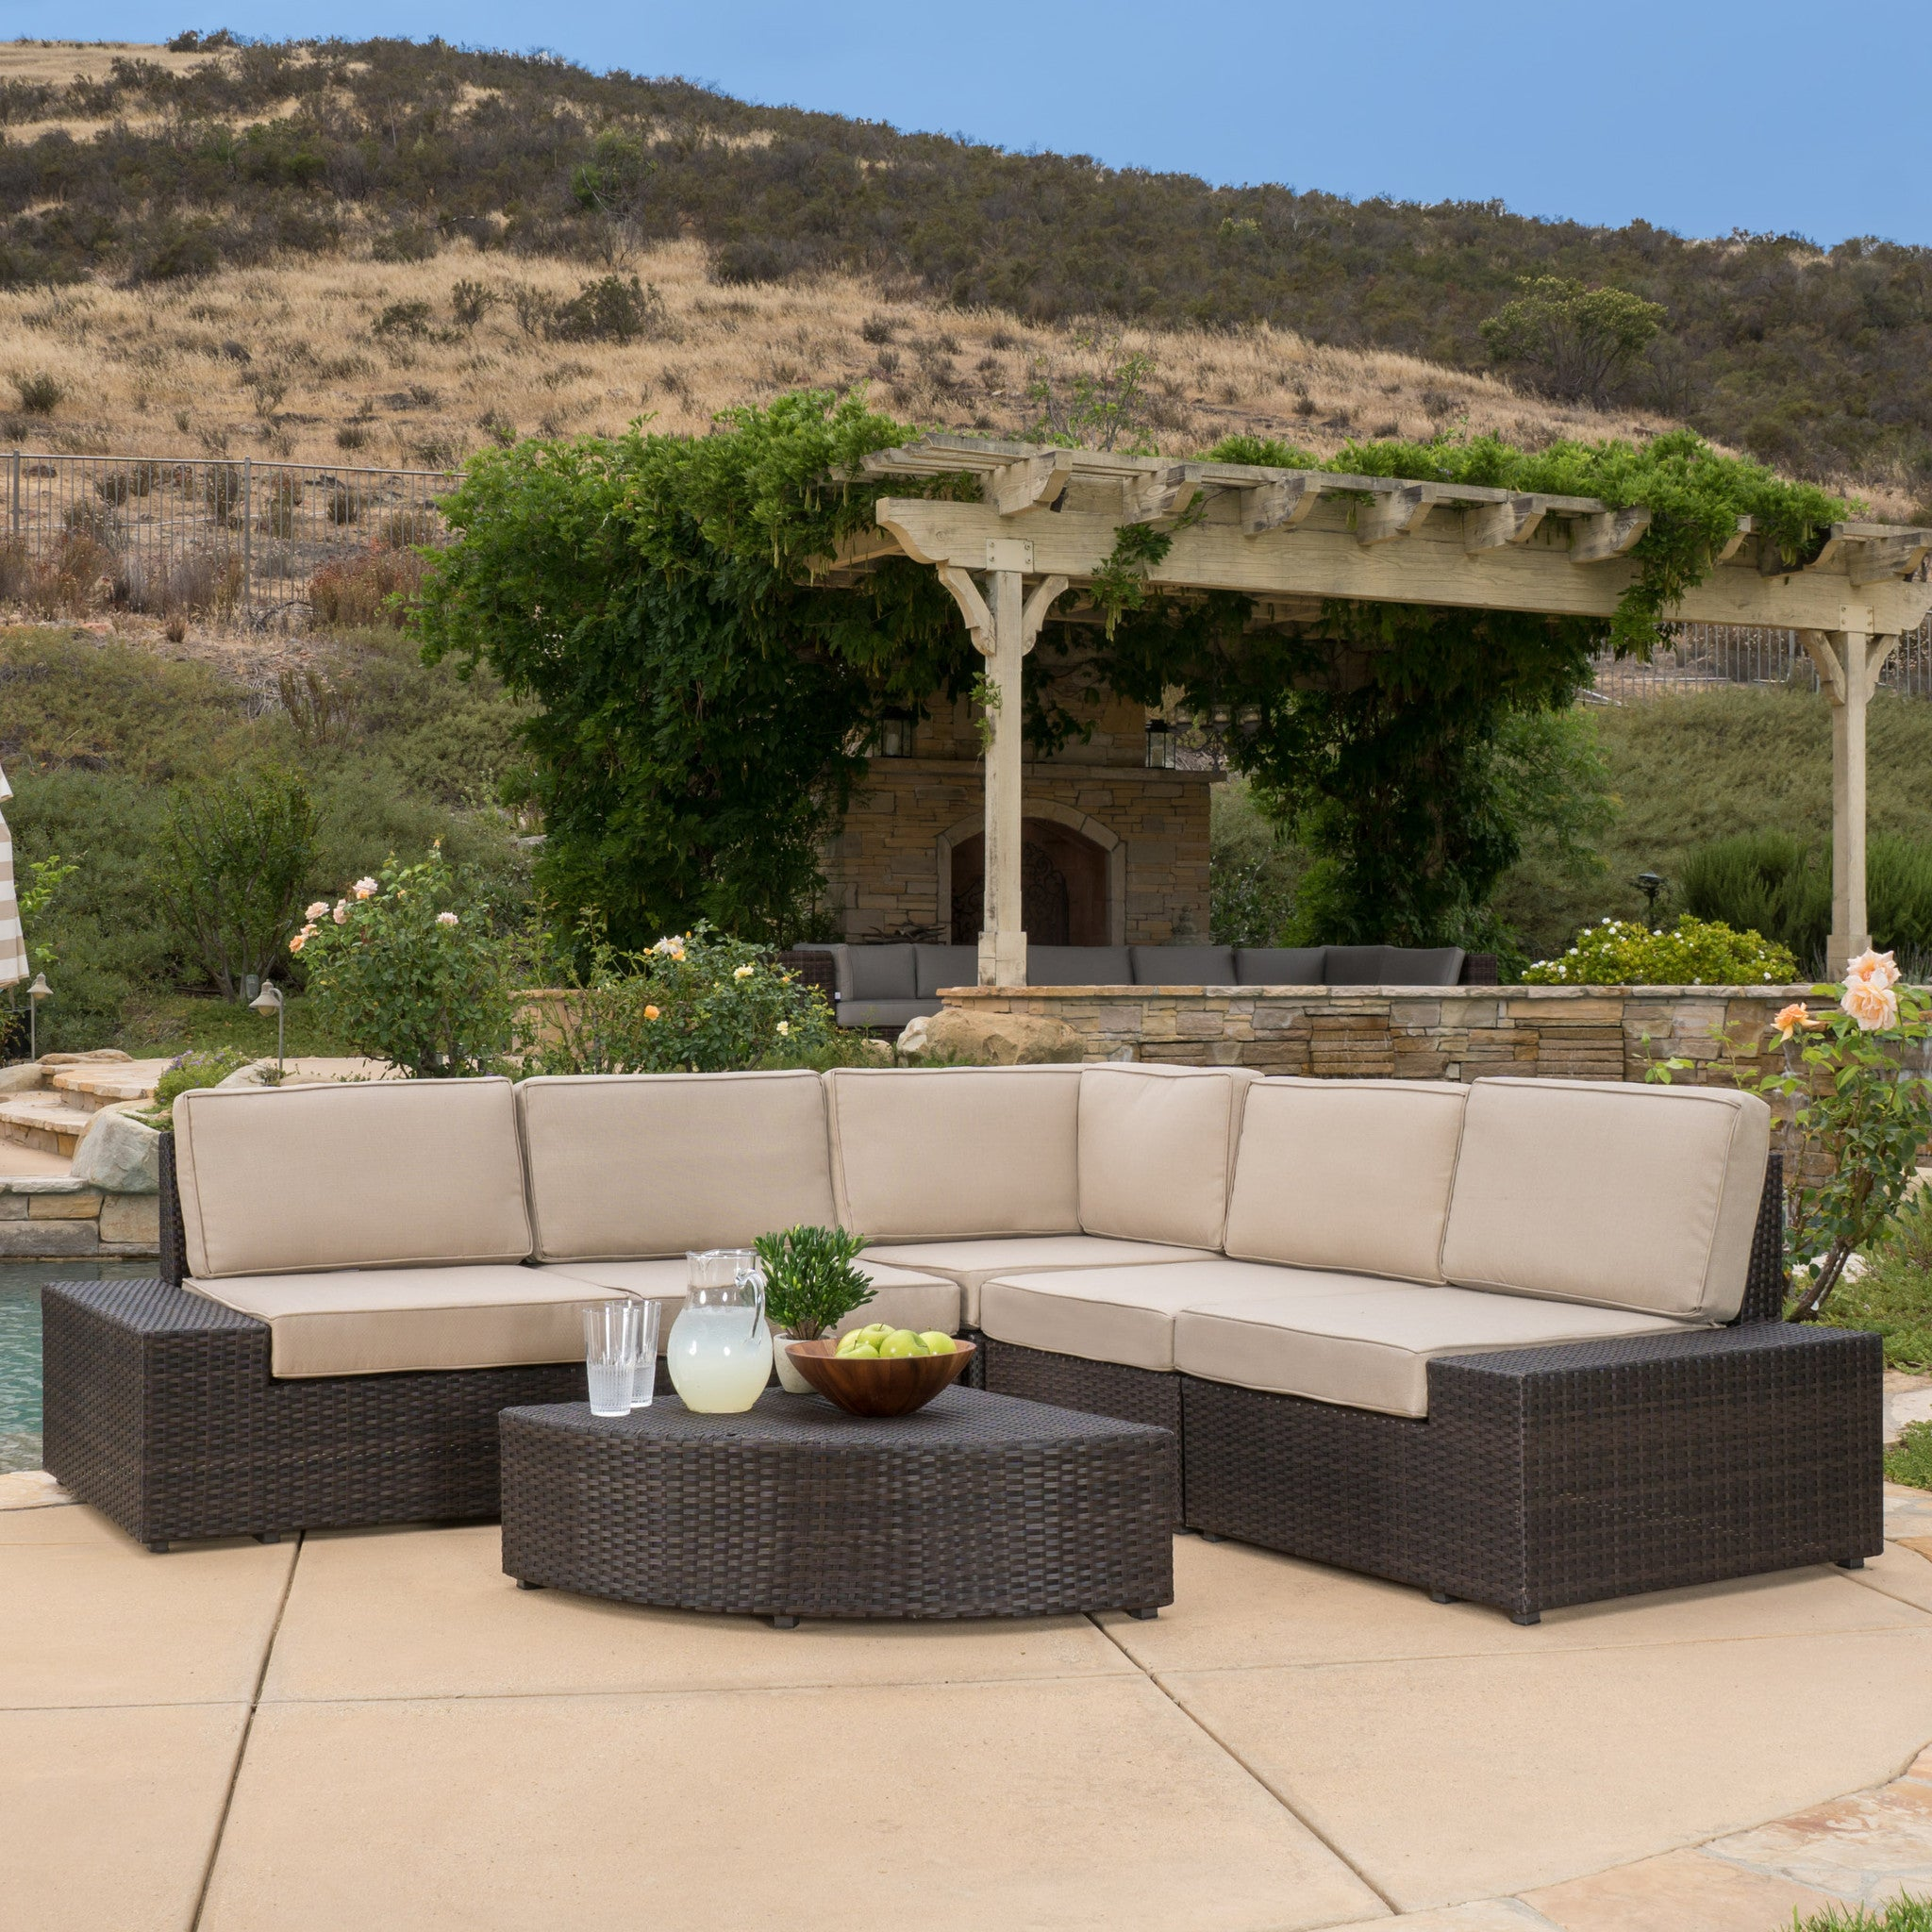 Reddington Outdoor Brown Wicker Sectional Seating Set Pic